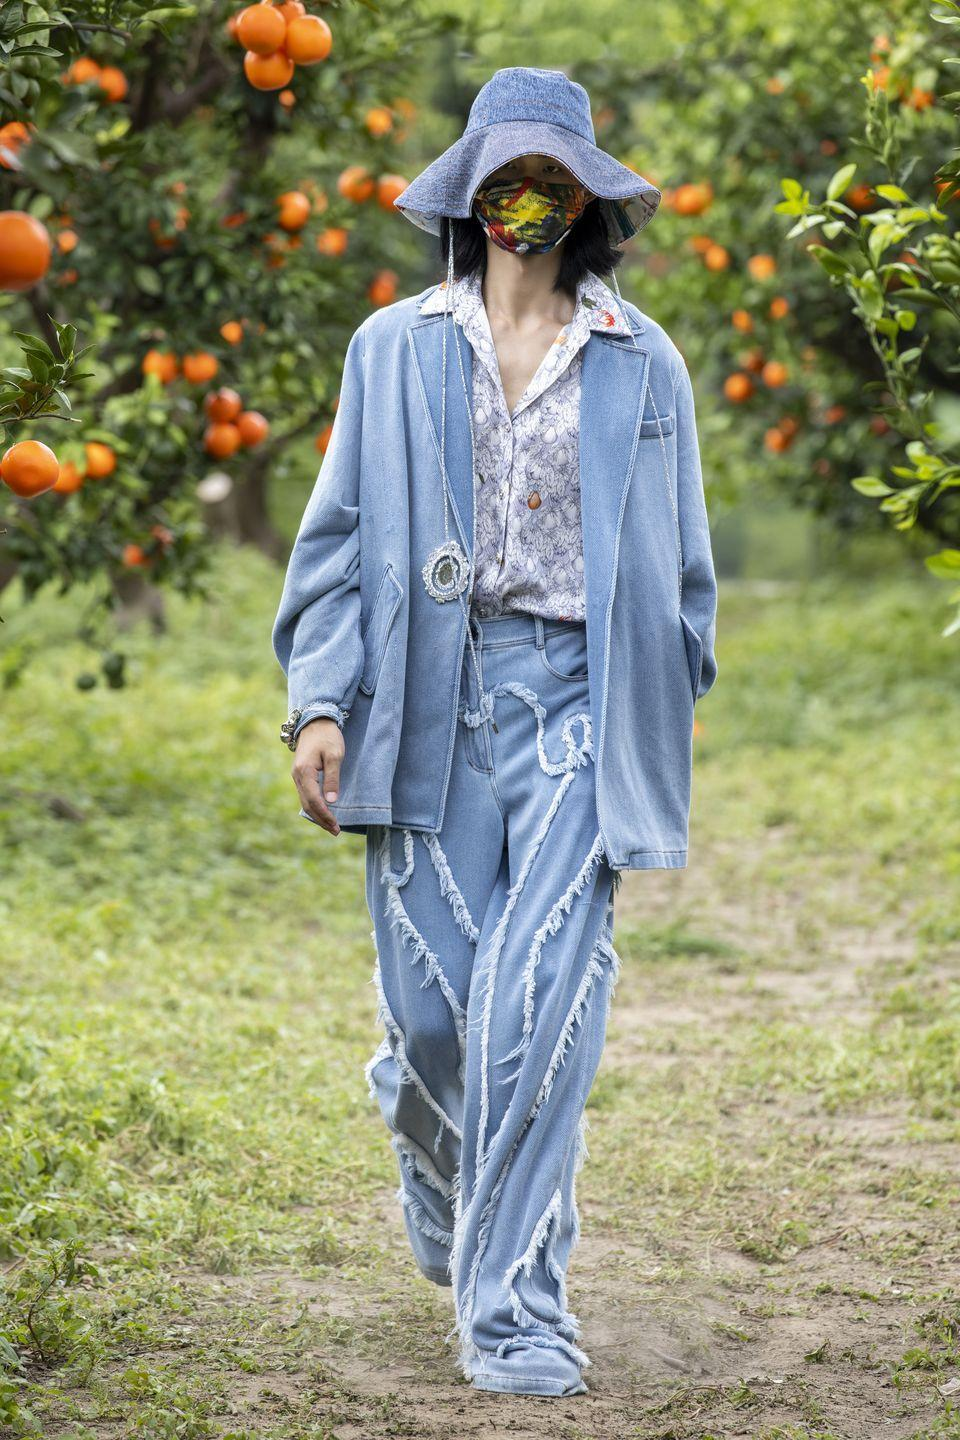 <p>Mithridate's SS22 collection entitled 'The Mirror Stage' was shot in a mirrored orange orchard in Shanghai, but presented to audiences through a digital experience. Founder and creative rirector Demon Zhang was inspired by the psychoanalytic theory by Jacques Lacan, based on the belief that a child's personal apperception of oneself develops at six months old, establishing the recognition of themselves in a mirror and thereafter introducing the formation of the ego.</p>